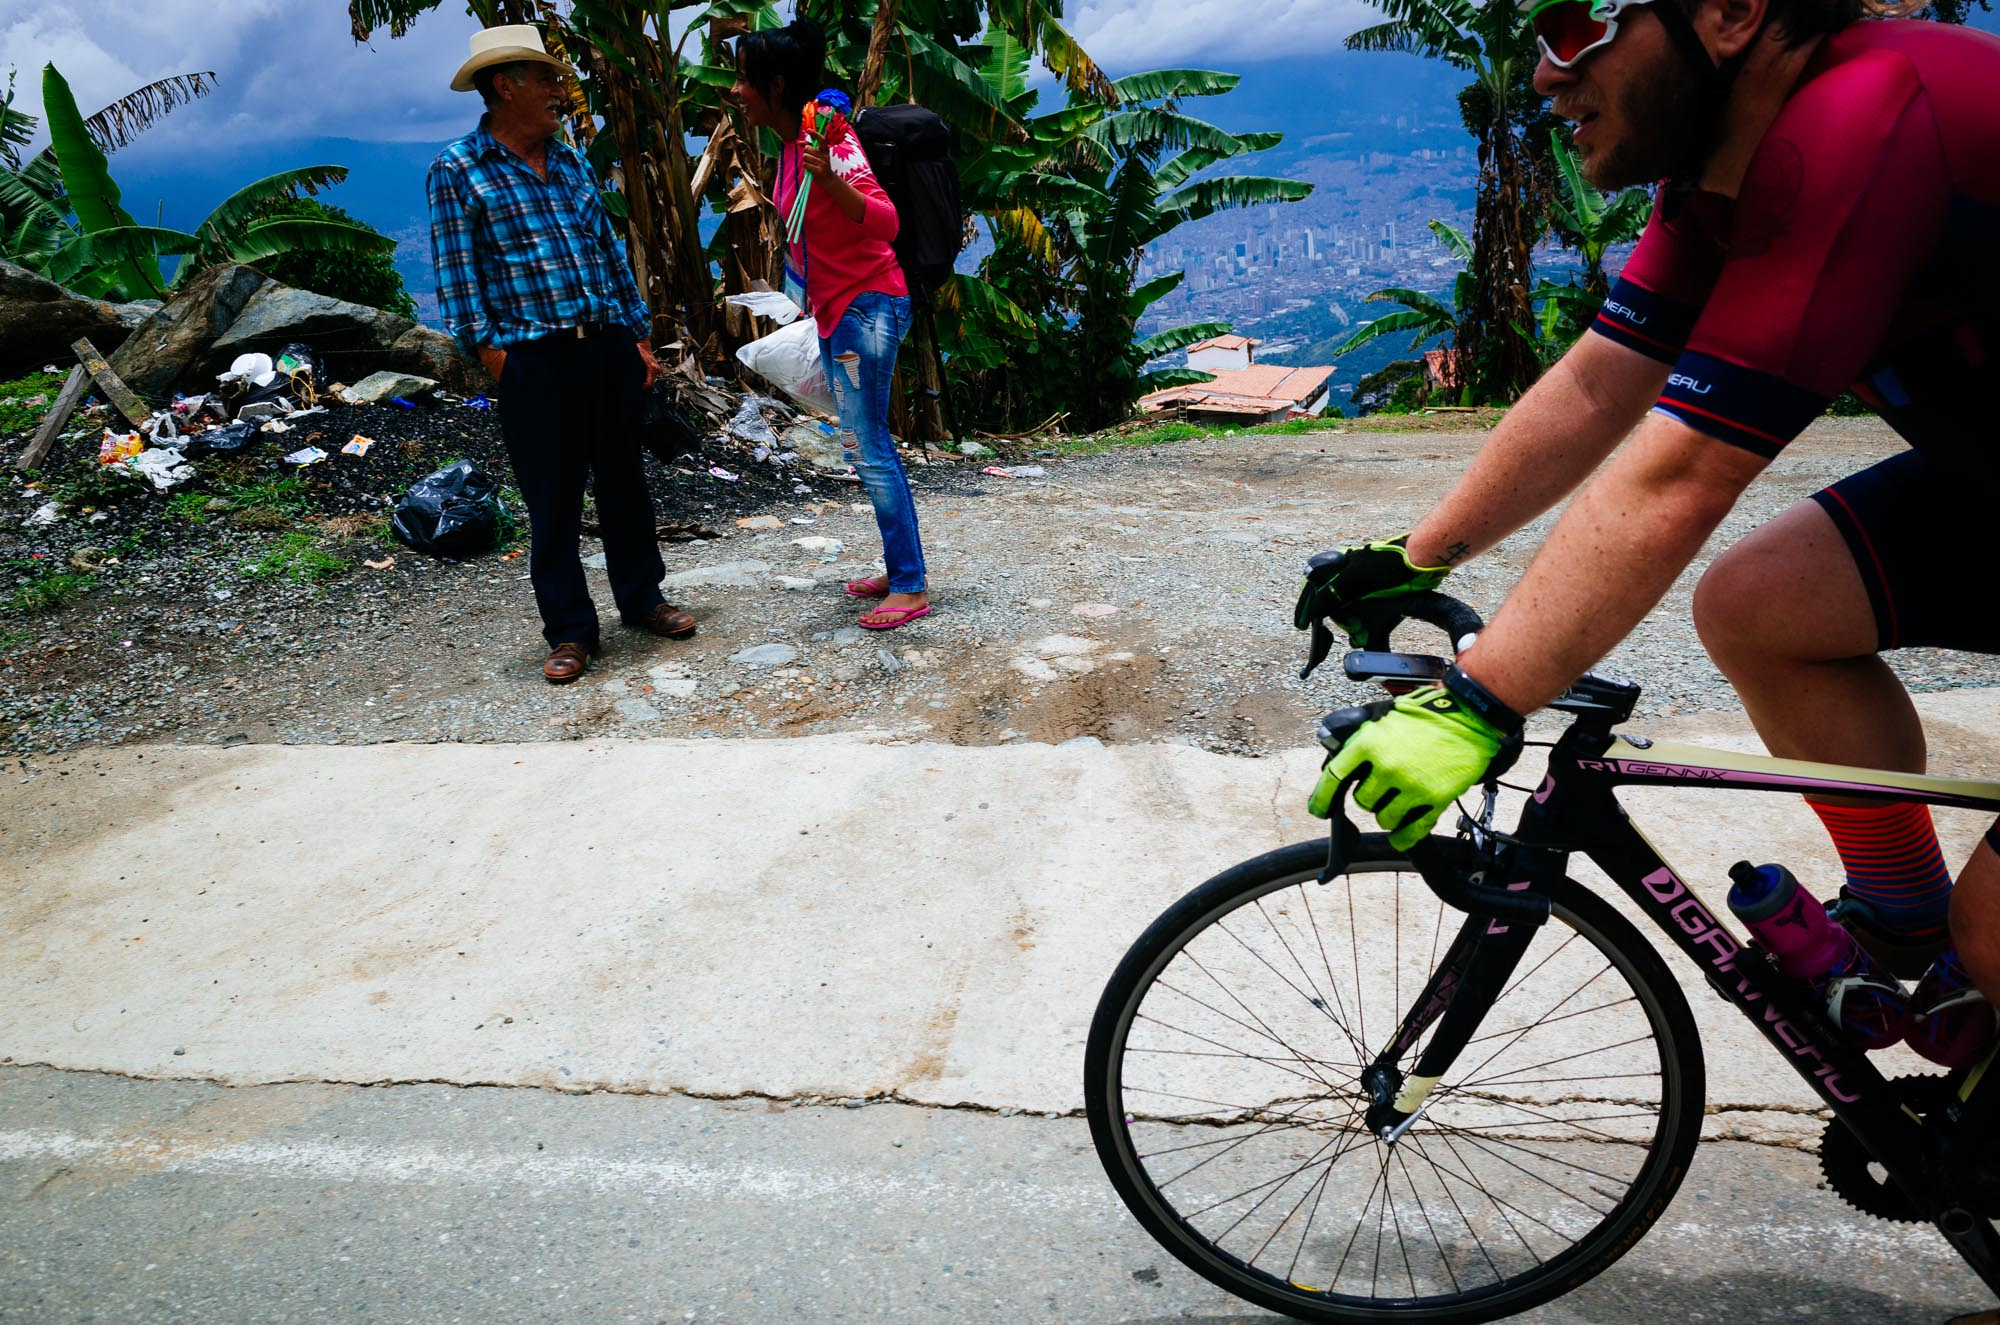 to-be-determined-photo-rhetoric-cycling-in-colombia-1110.jpg